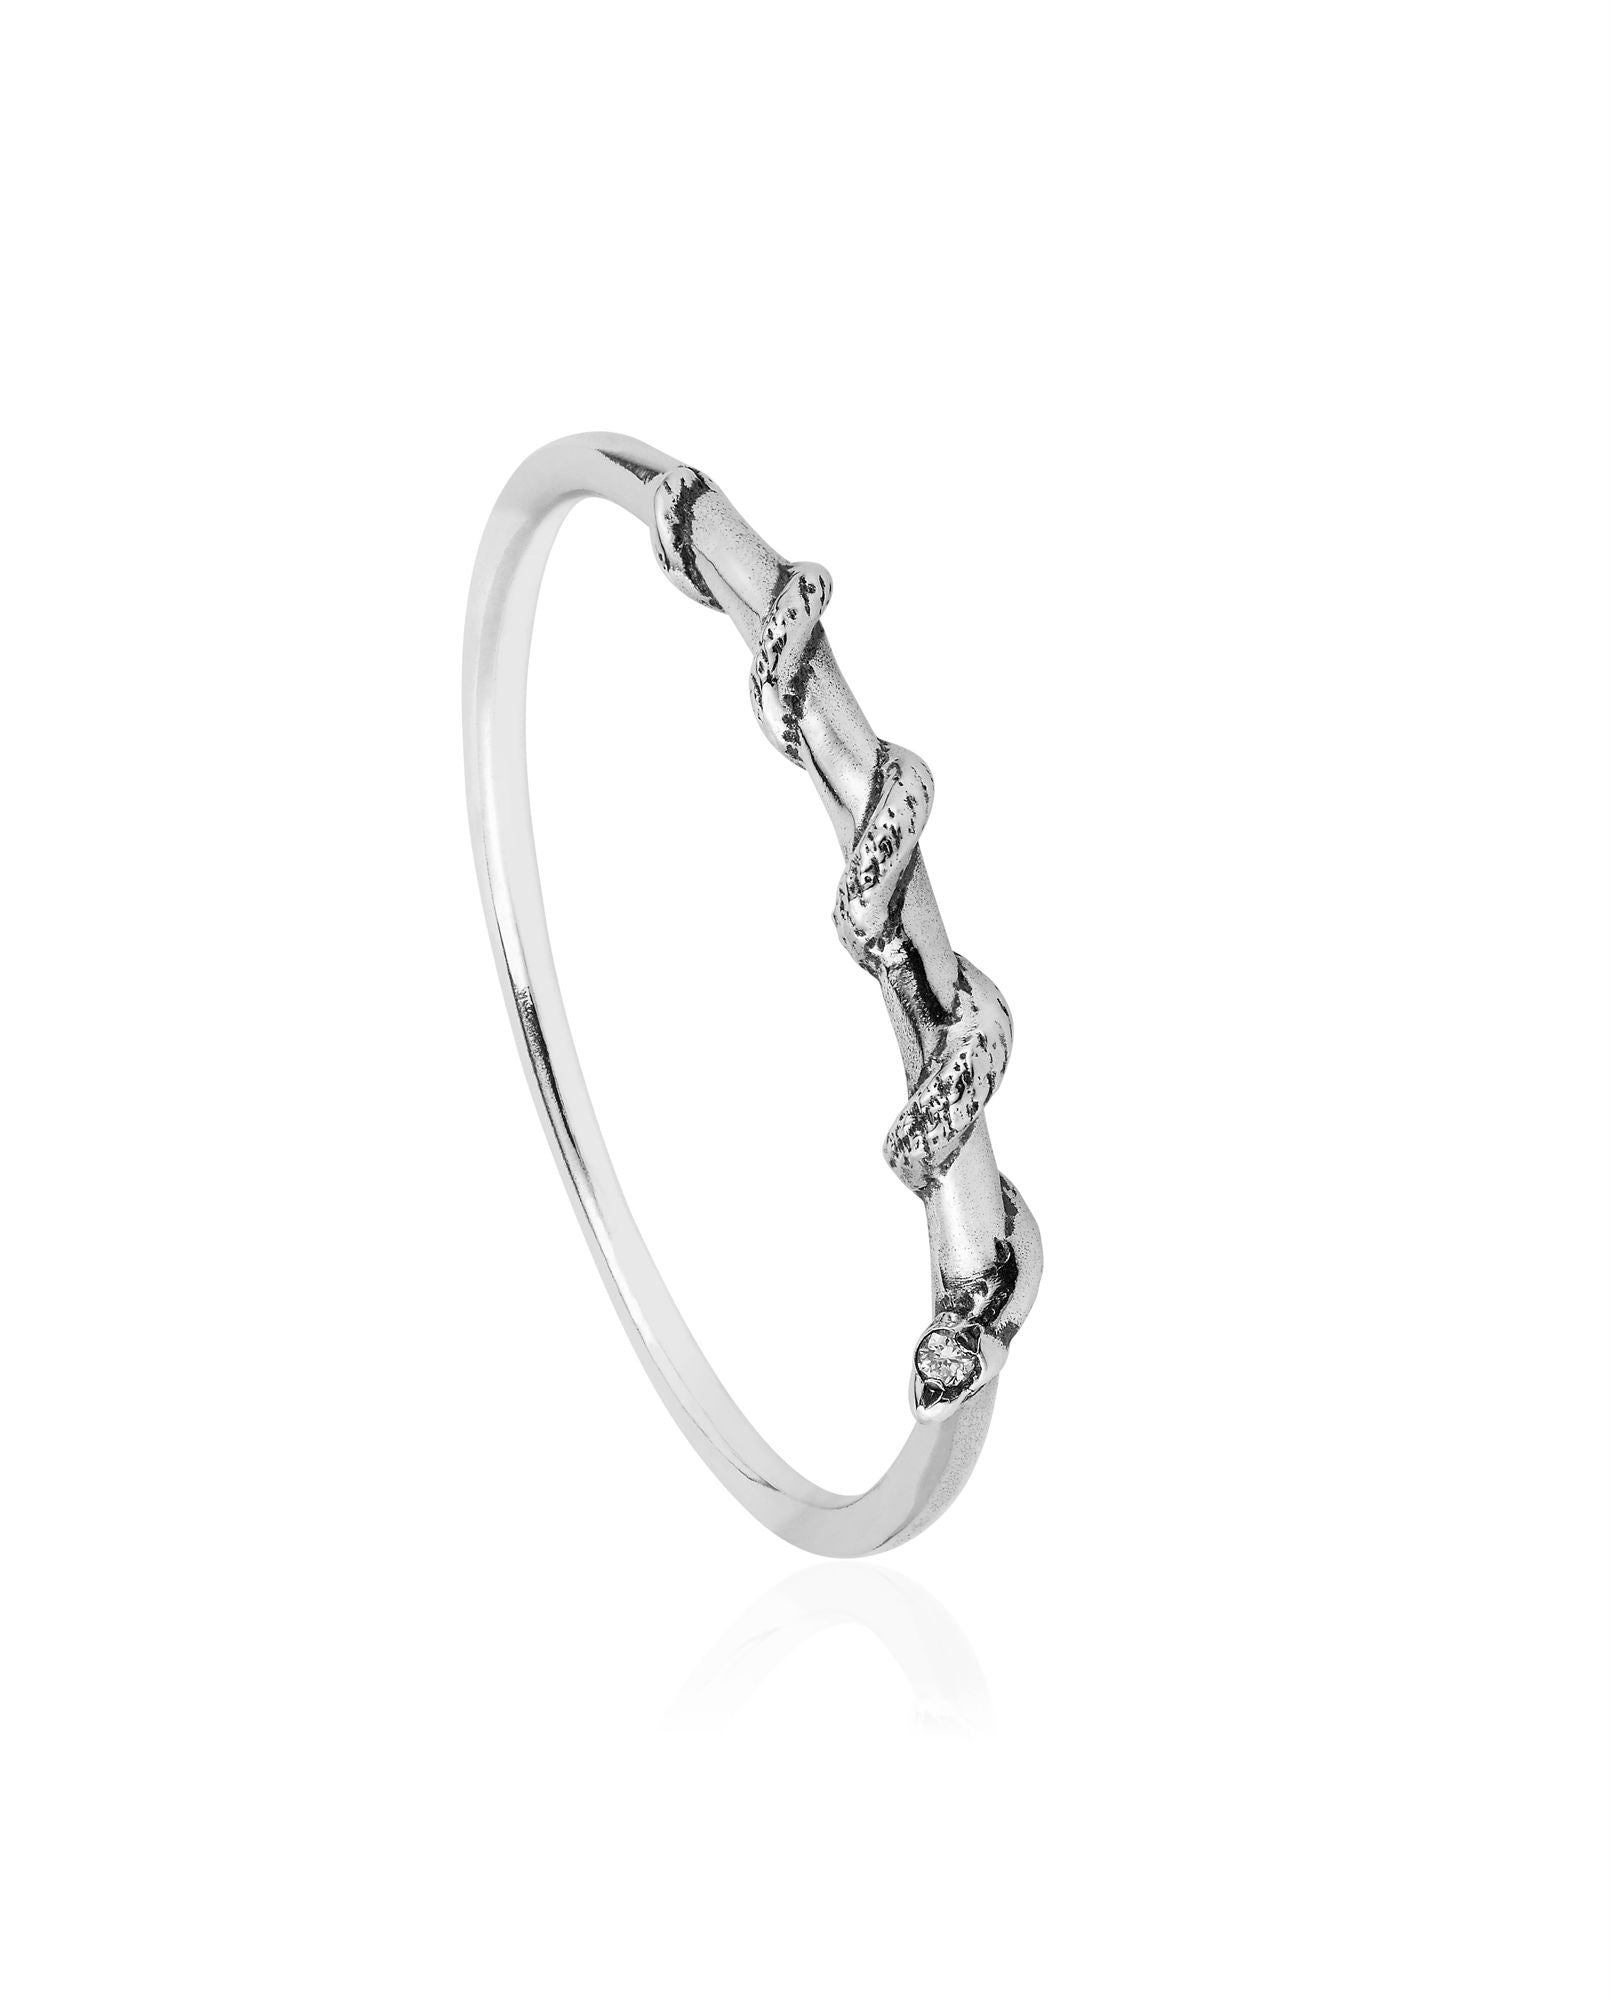 Lee Renée - Tiny snake ring – Diamonds & silver - The Velvet Closet - 1